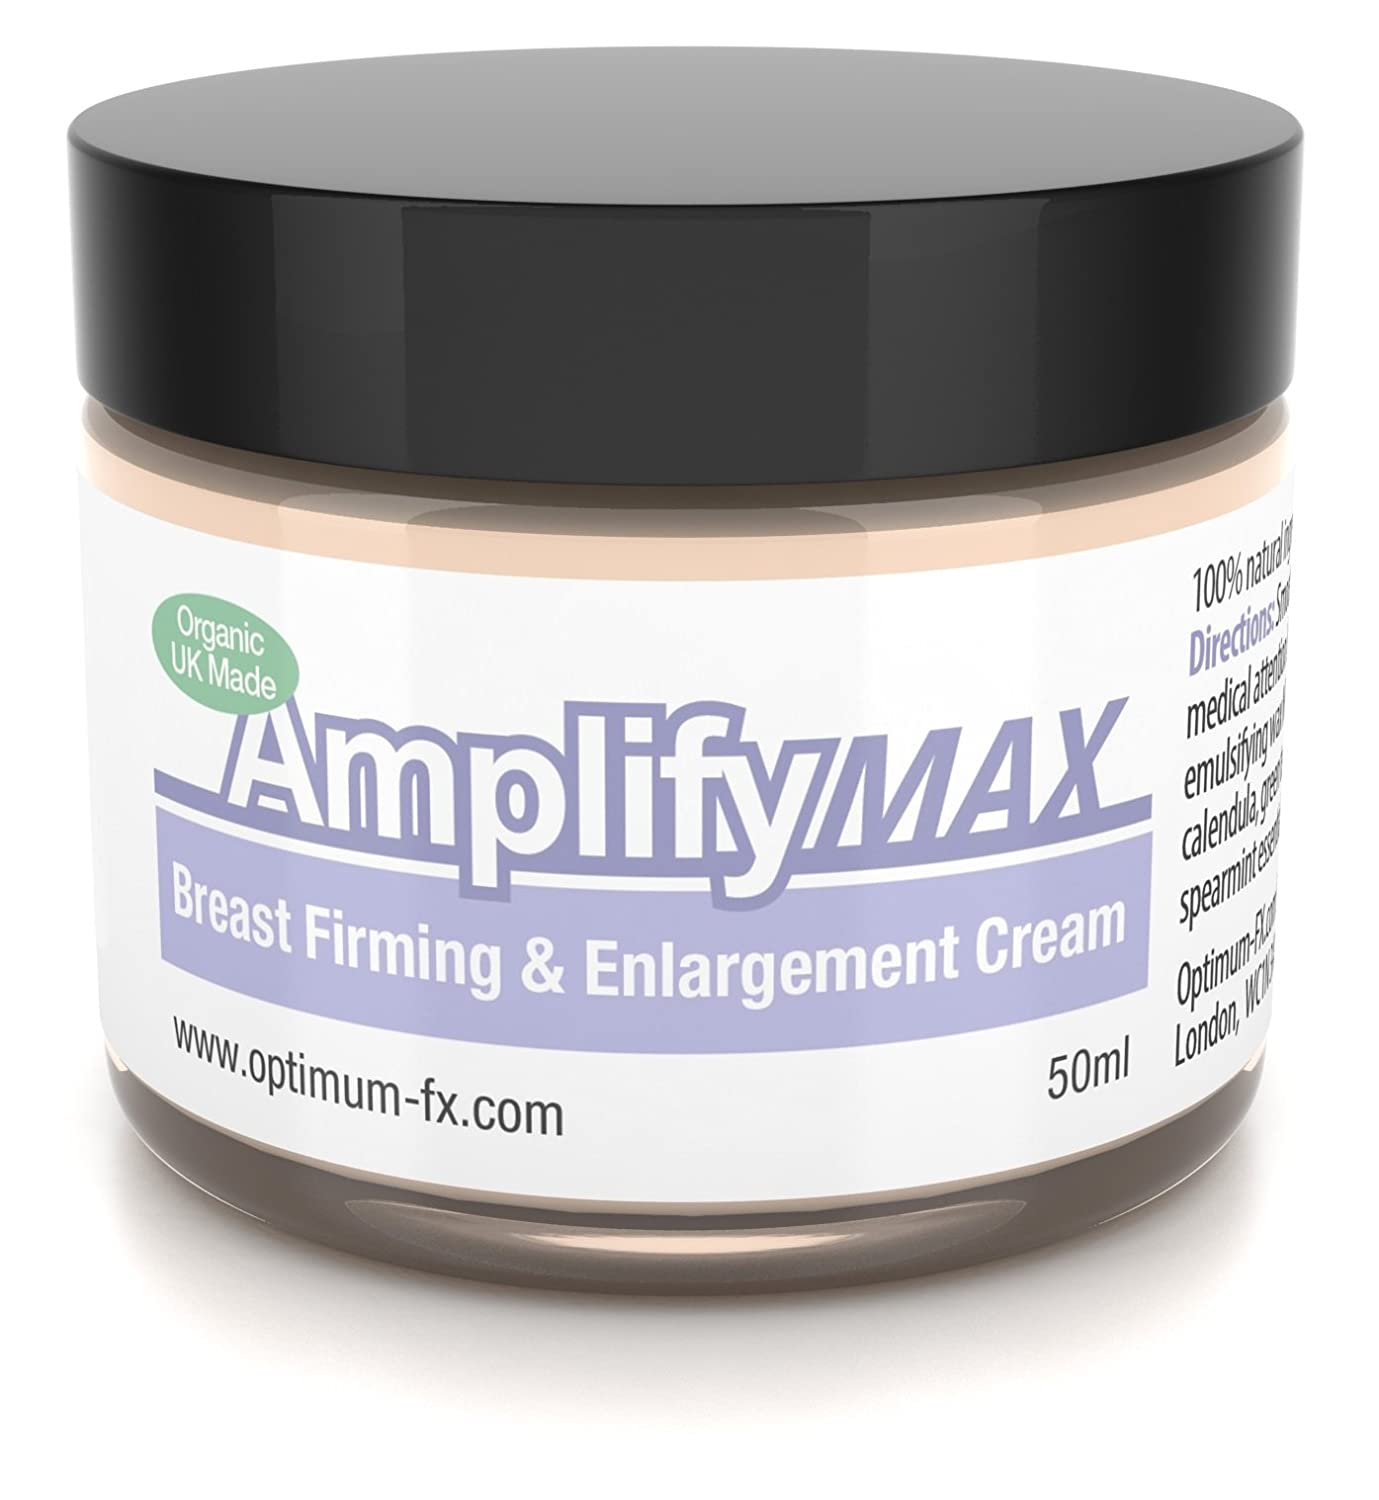 Amplify MAX Enhanced Breast Firming Cream Works In 30 Days 11 Ways To A Fuller Firmer Bust FAST UK Made With Natural And Organic Ingredients - Paraben and Cruelty FREE - 50ml 999467M